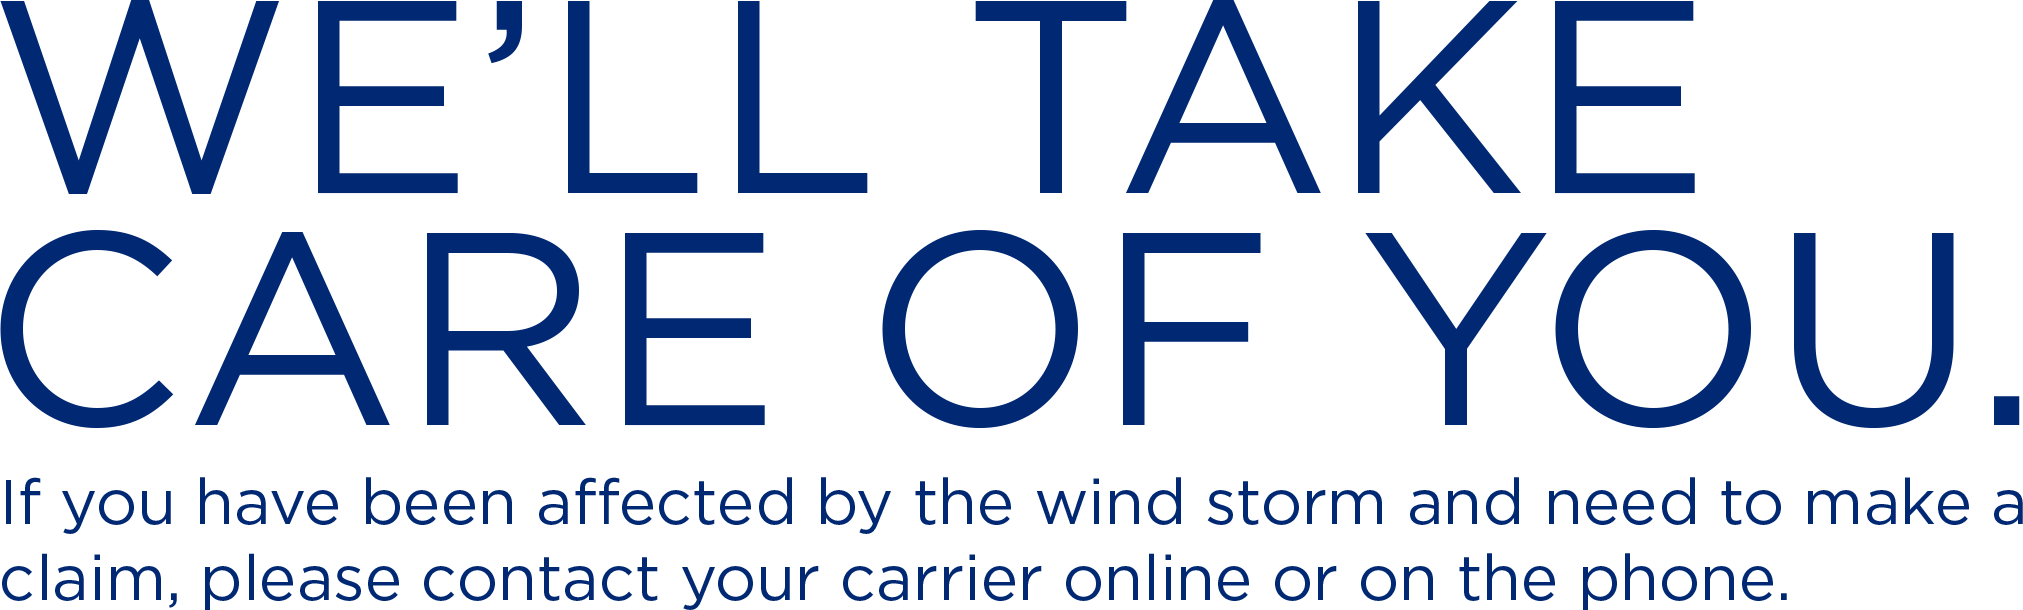 We'll Take Care Of You. If you have been affected by the wind storm and need to make a claim, please contact your carrier online or on the phone.